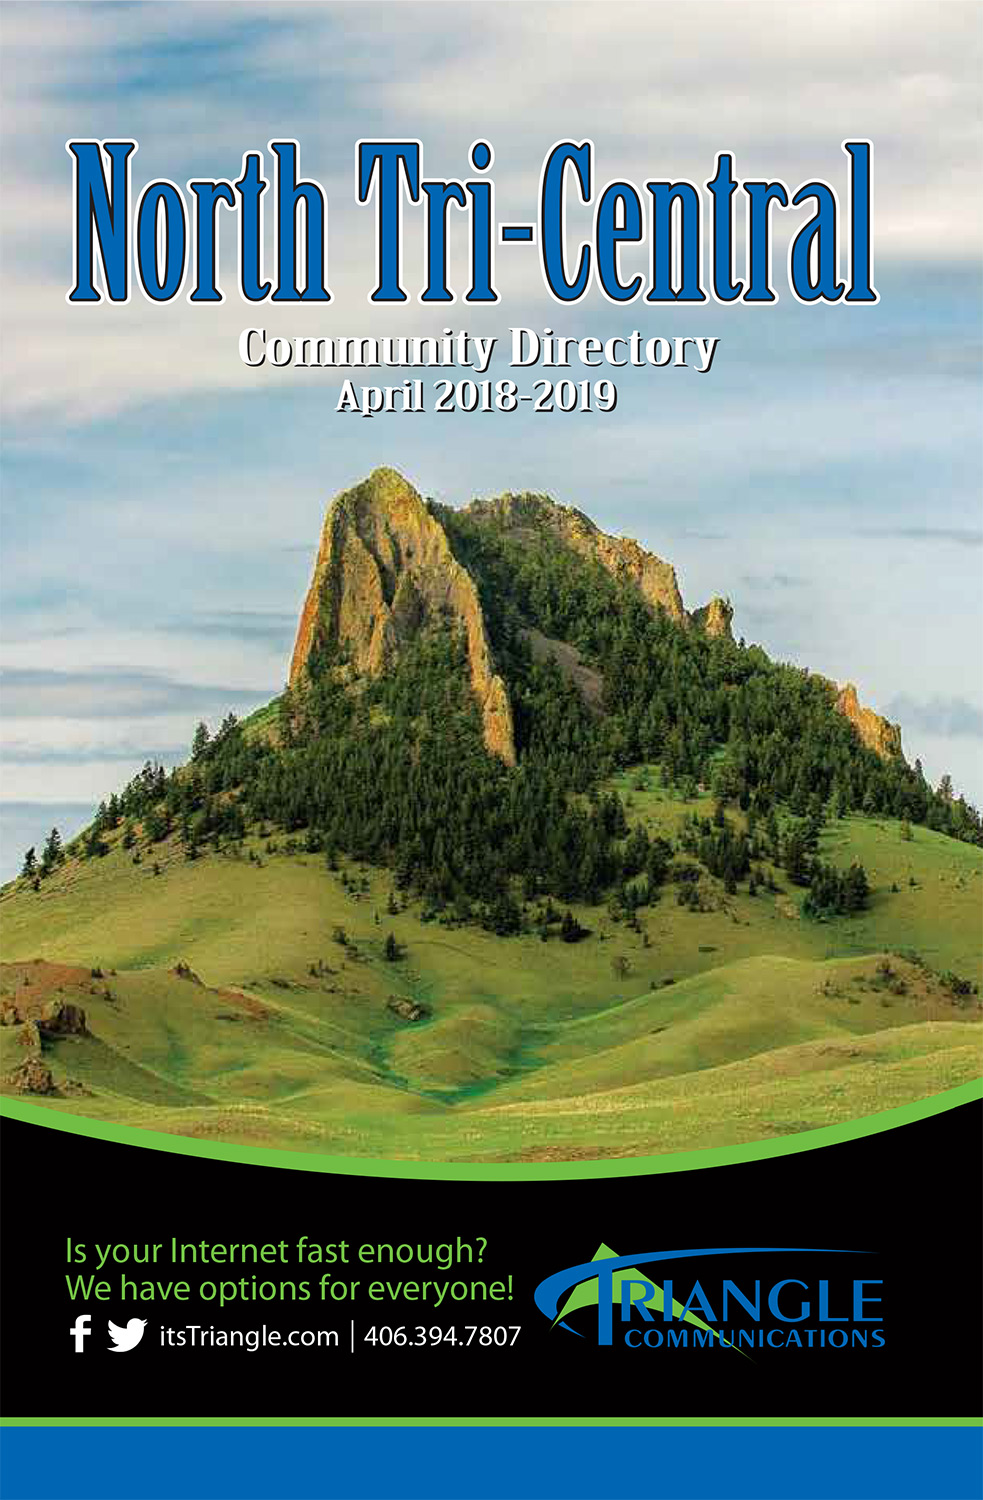 Montana Landscape Photography on Cover of Telephone Directory